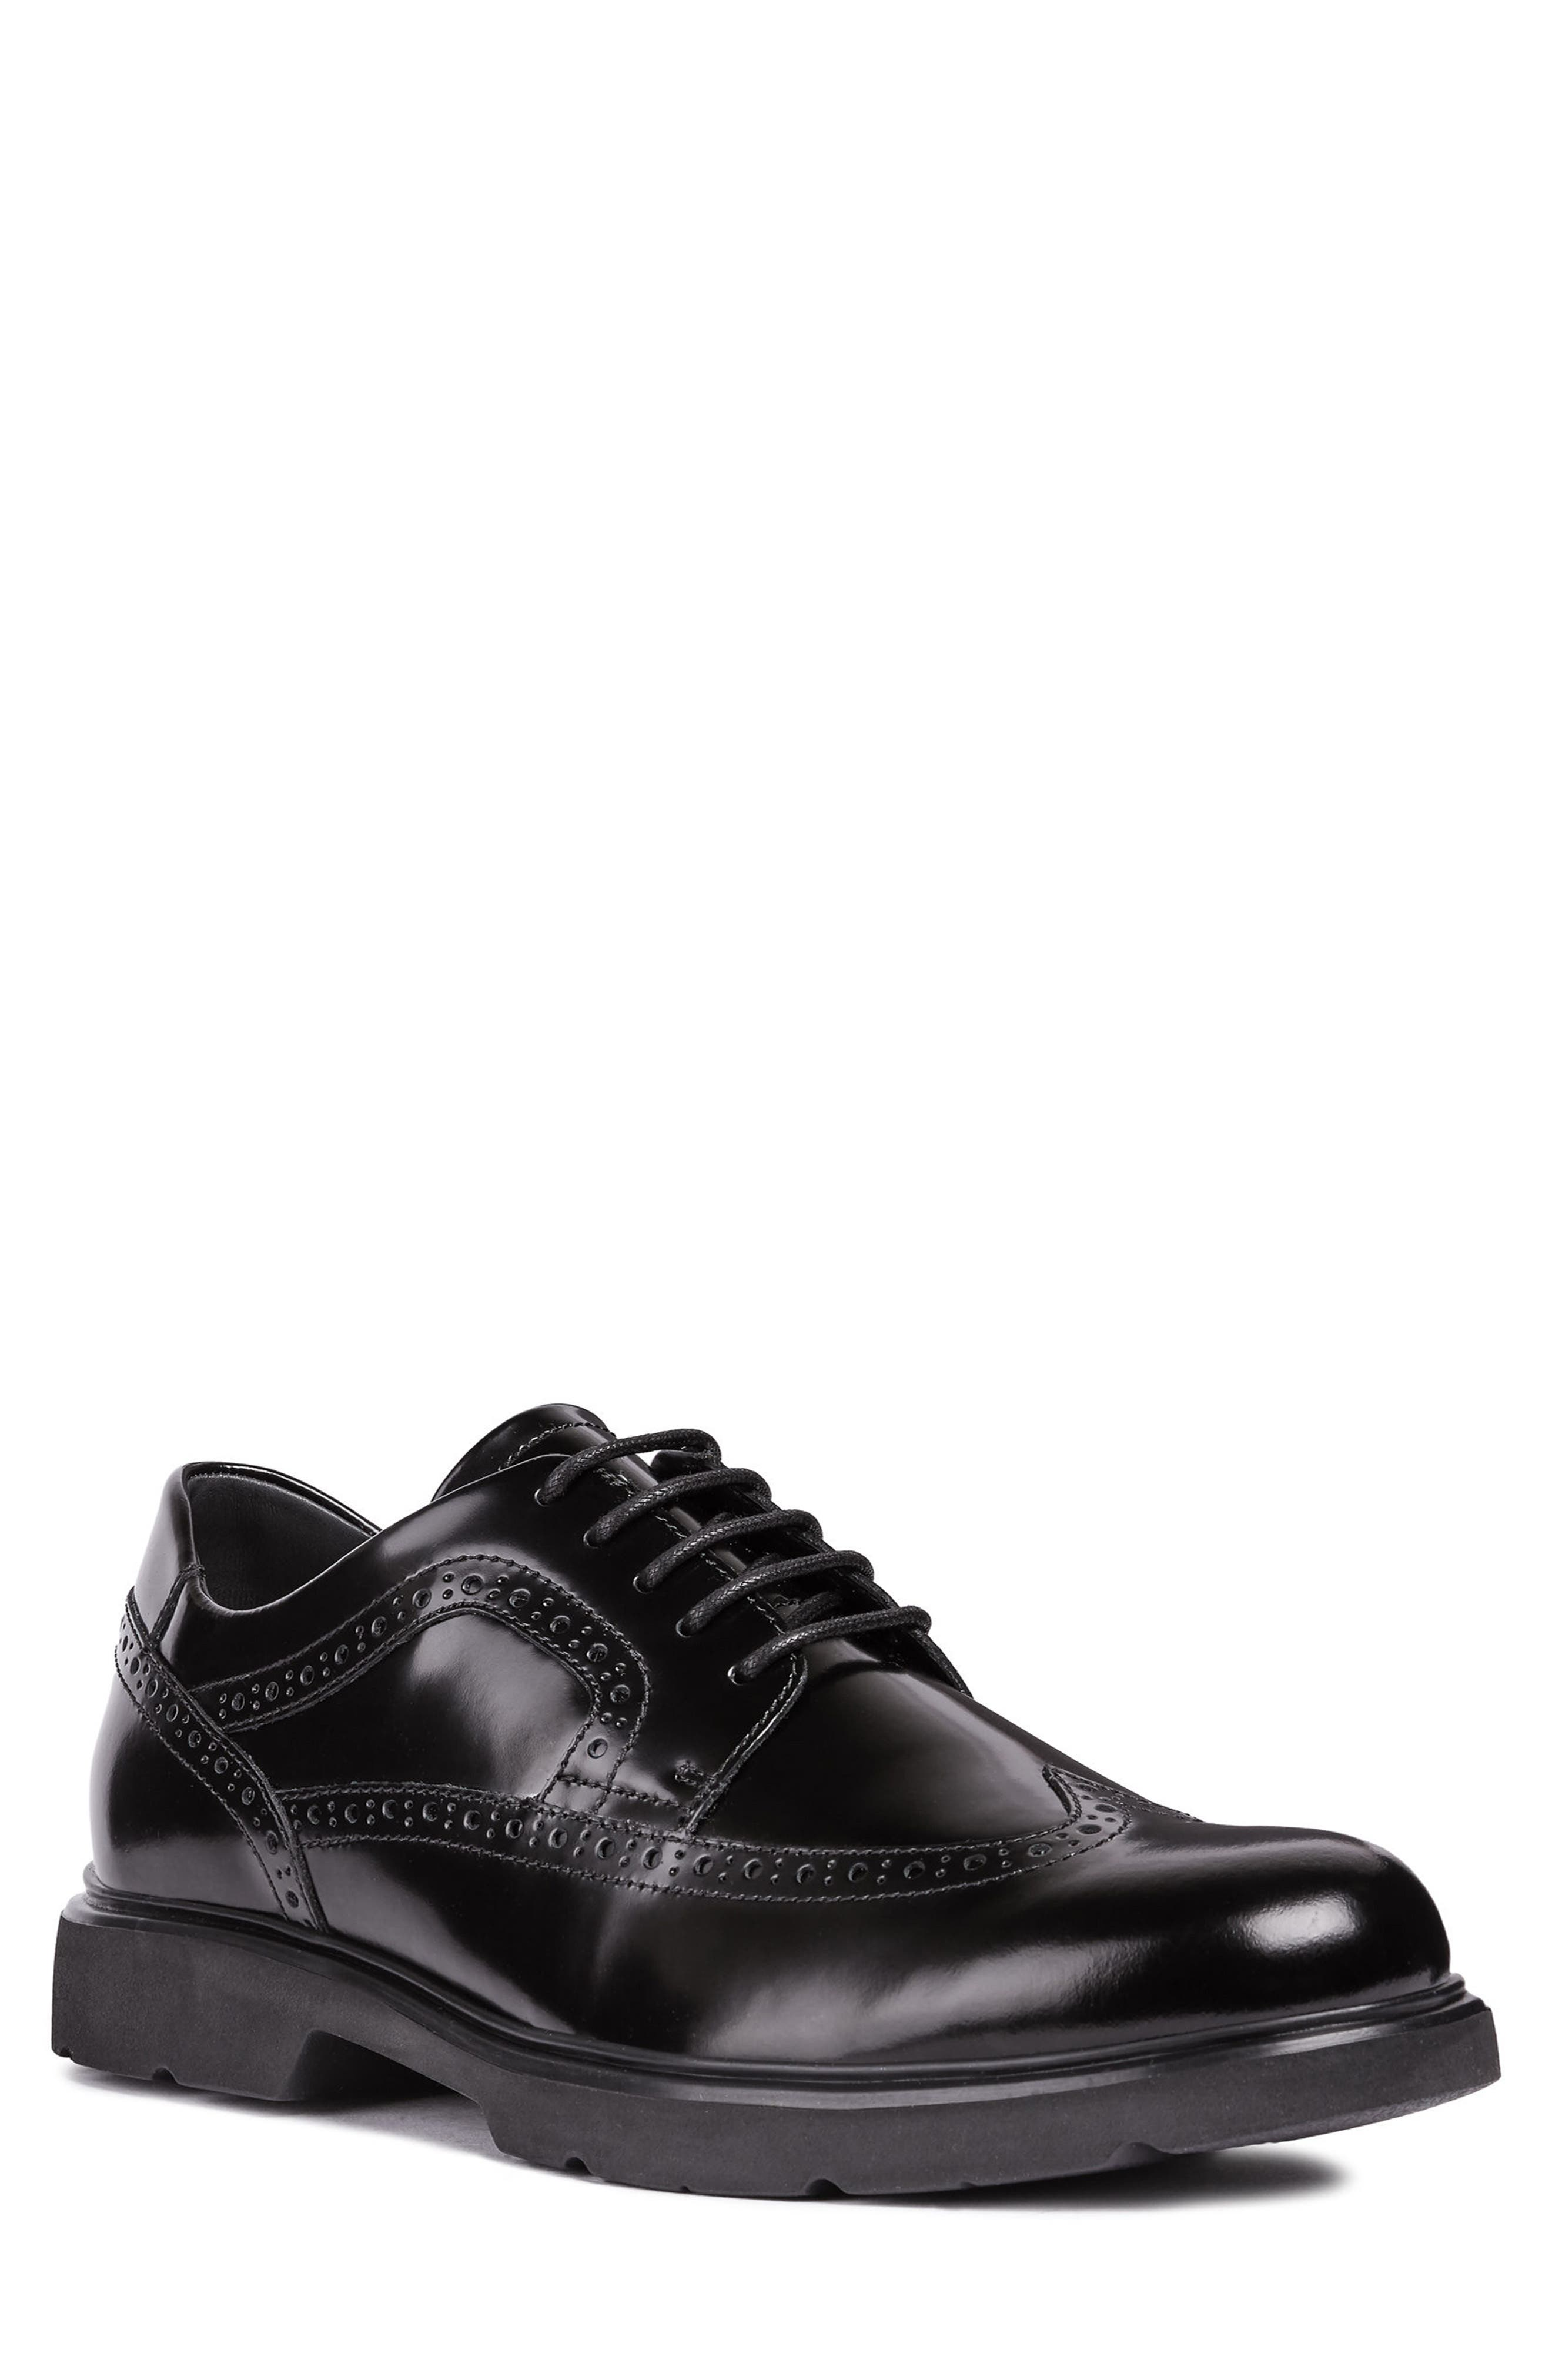 Arrall 1 Wingtip,                             Main thumbnail 1, color,                             BLACK LEATHER